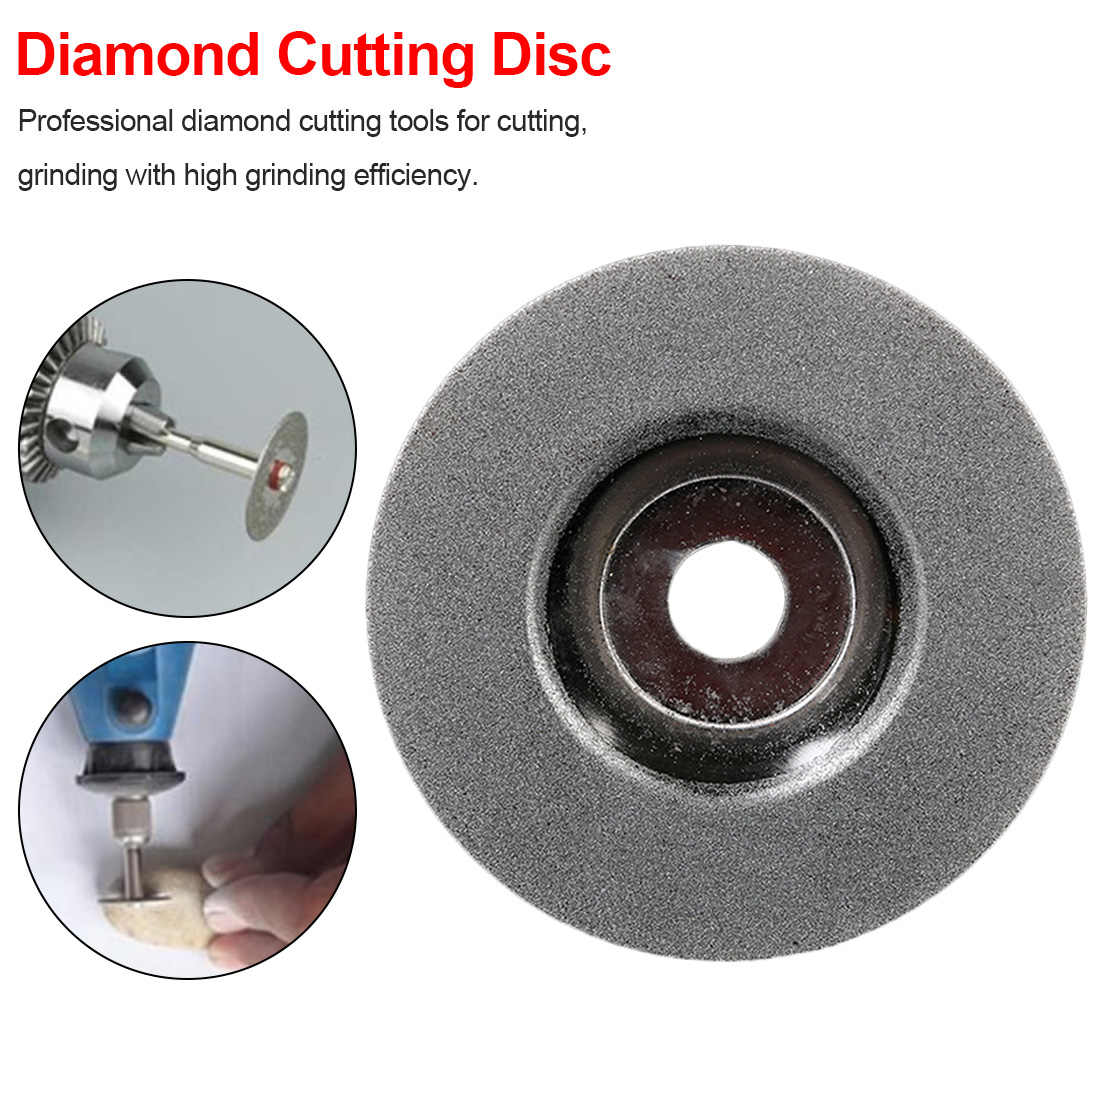 3 12 Diameter 1 Thickness Wool Felt Polishing Buffing Wheel Jade Metal Mirror Surface Finish Bench Grinder Tool Aliexpress